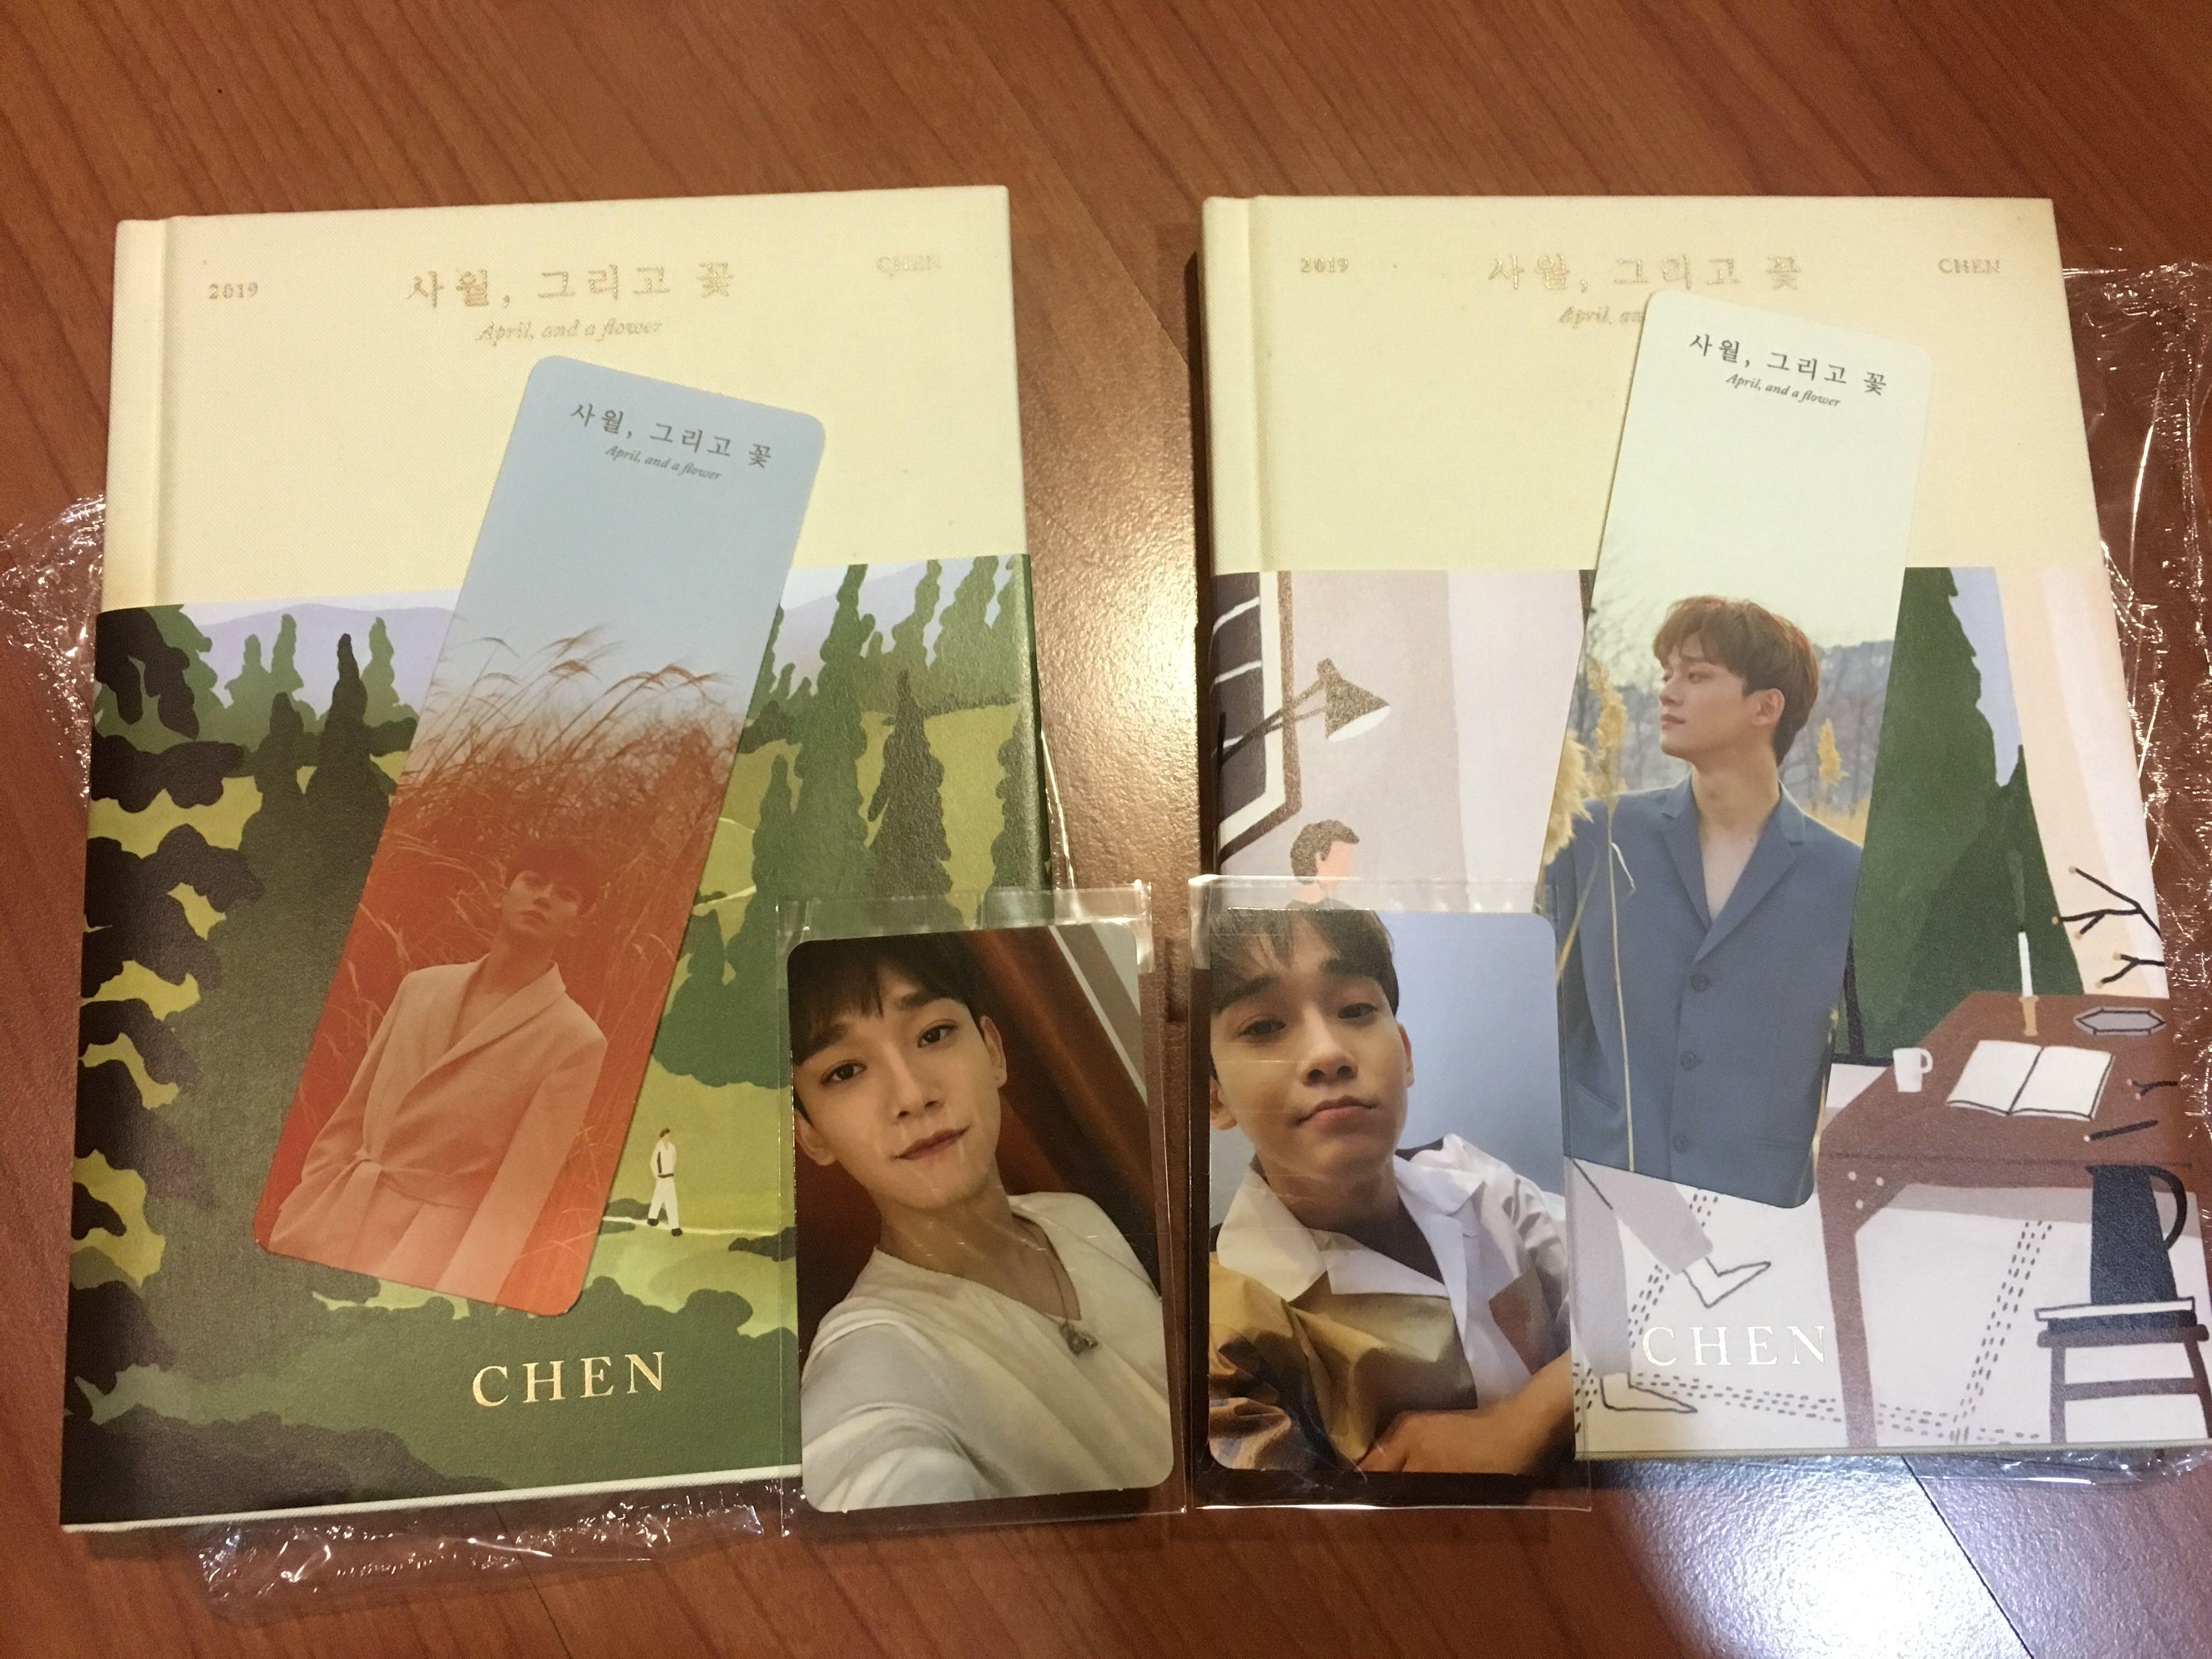 EXO CHEN 金鍾大solo專輯 April, and a flower